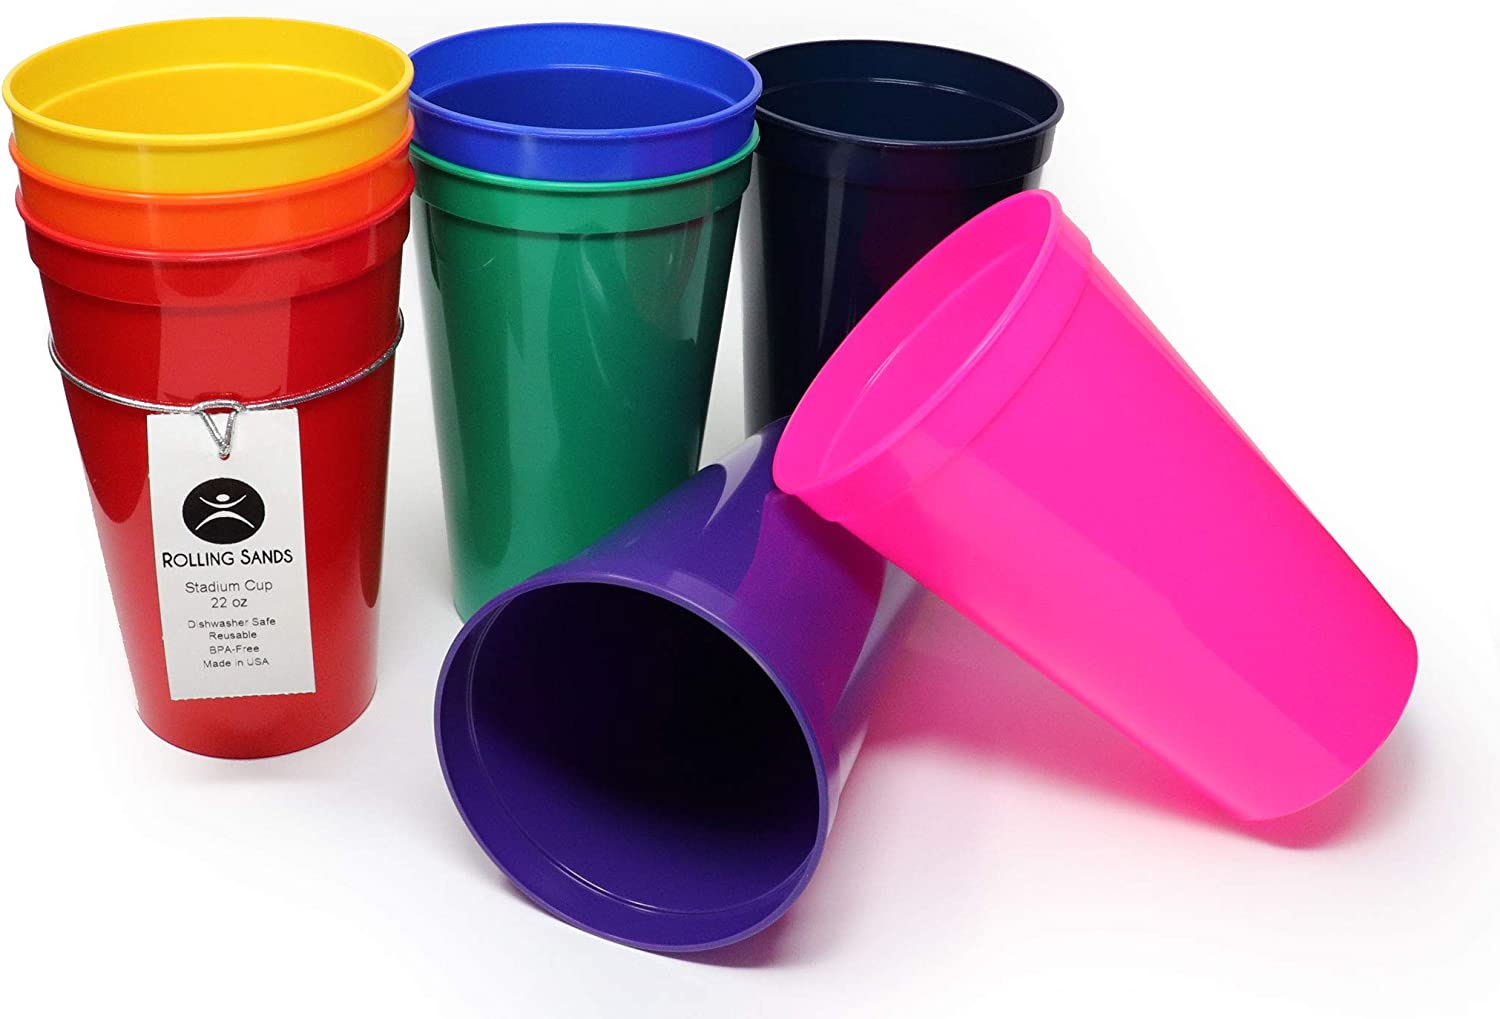 Rolling Sands 22 Ounce Reusable Plastic Stadium Cups Rainbow, 8 Pack, Made in USA, BPA-Free Dishwasher Safe Plastic Tumblers